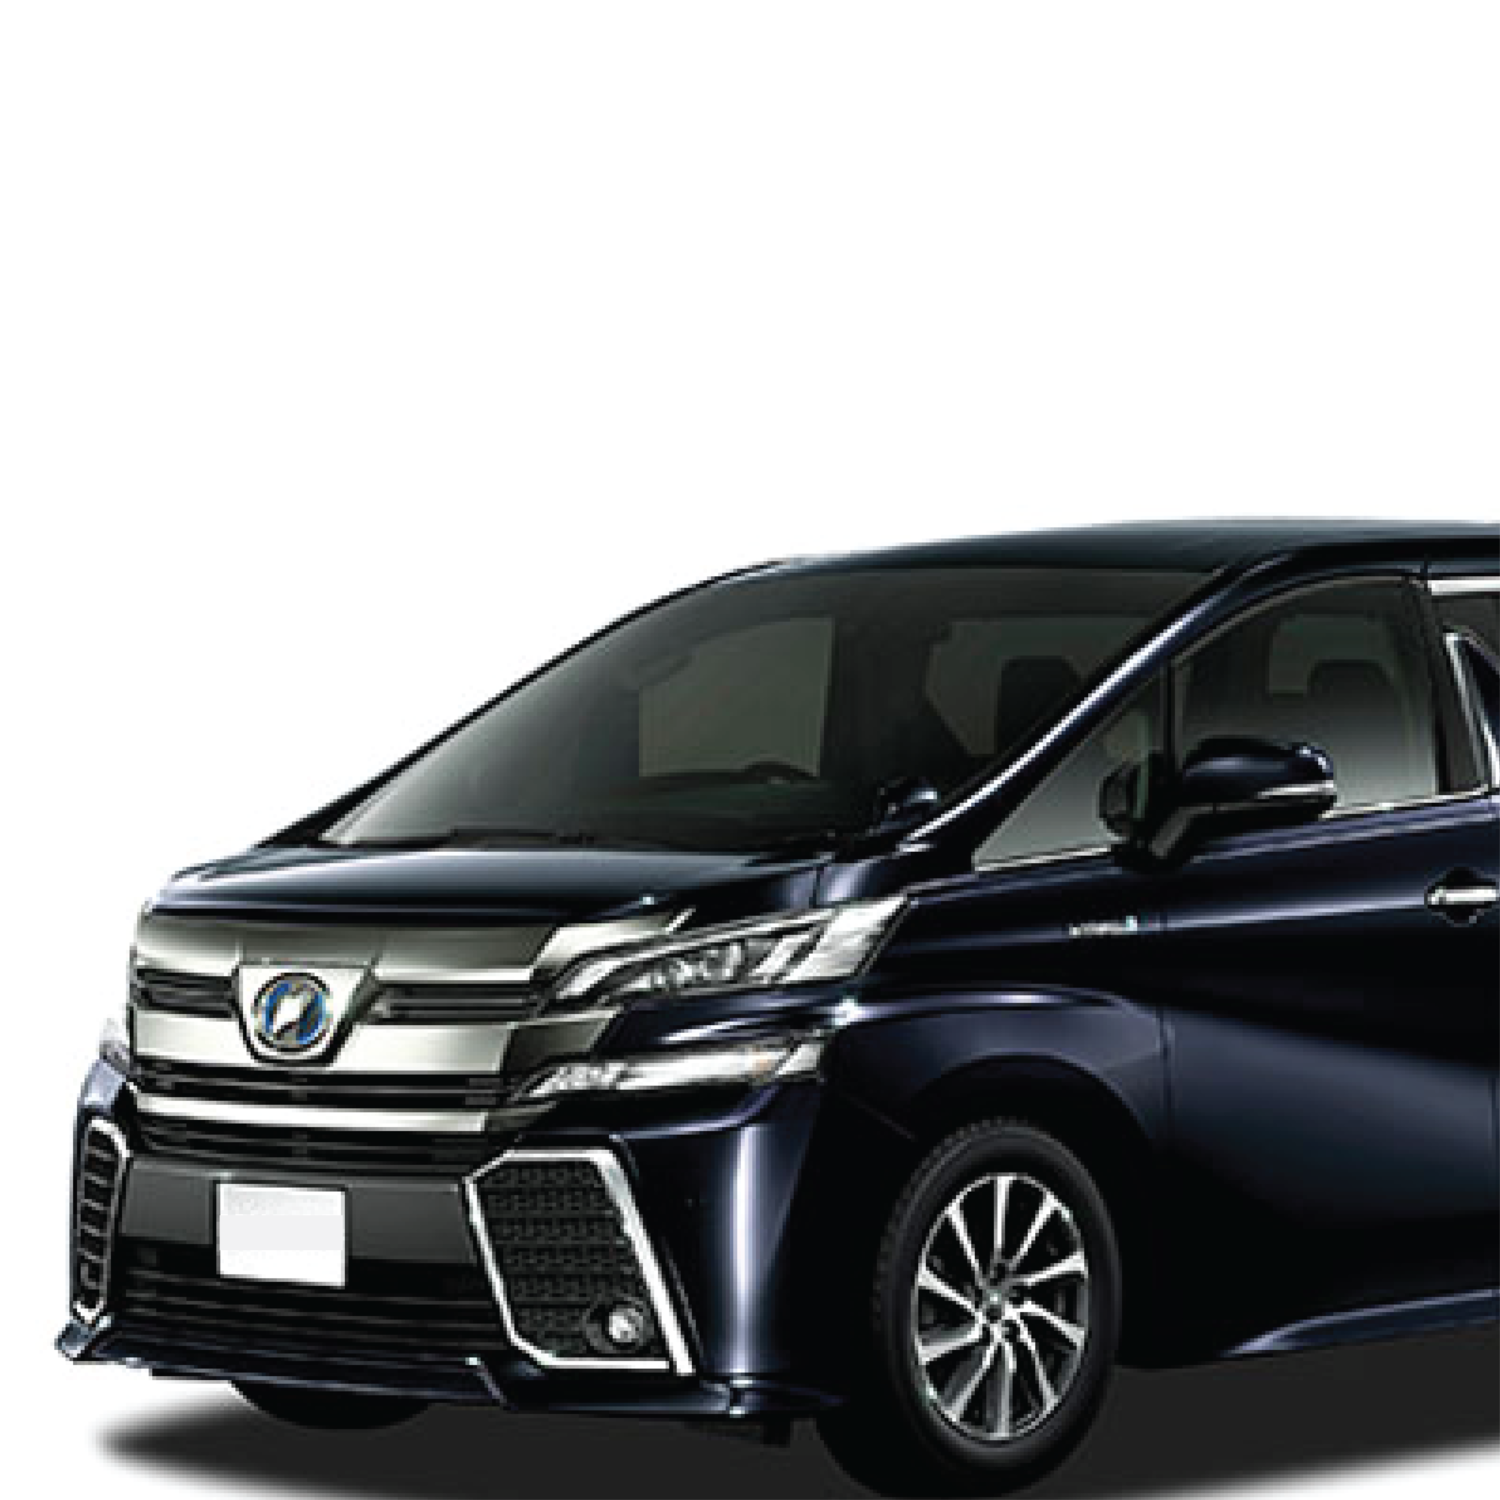 Book a Lux 7 Limo (Hourly Charter)